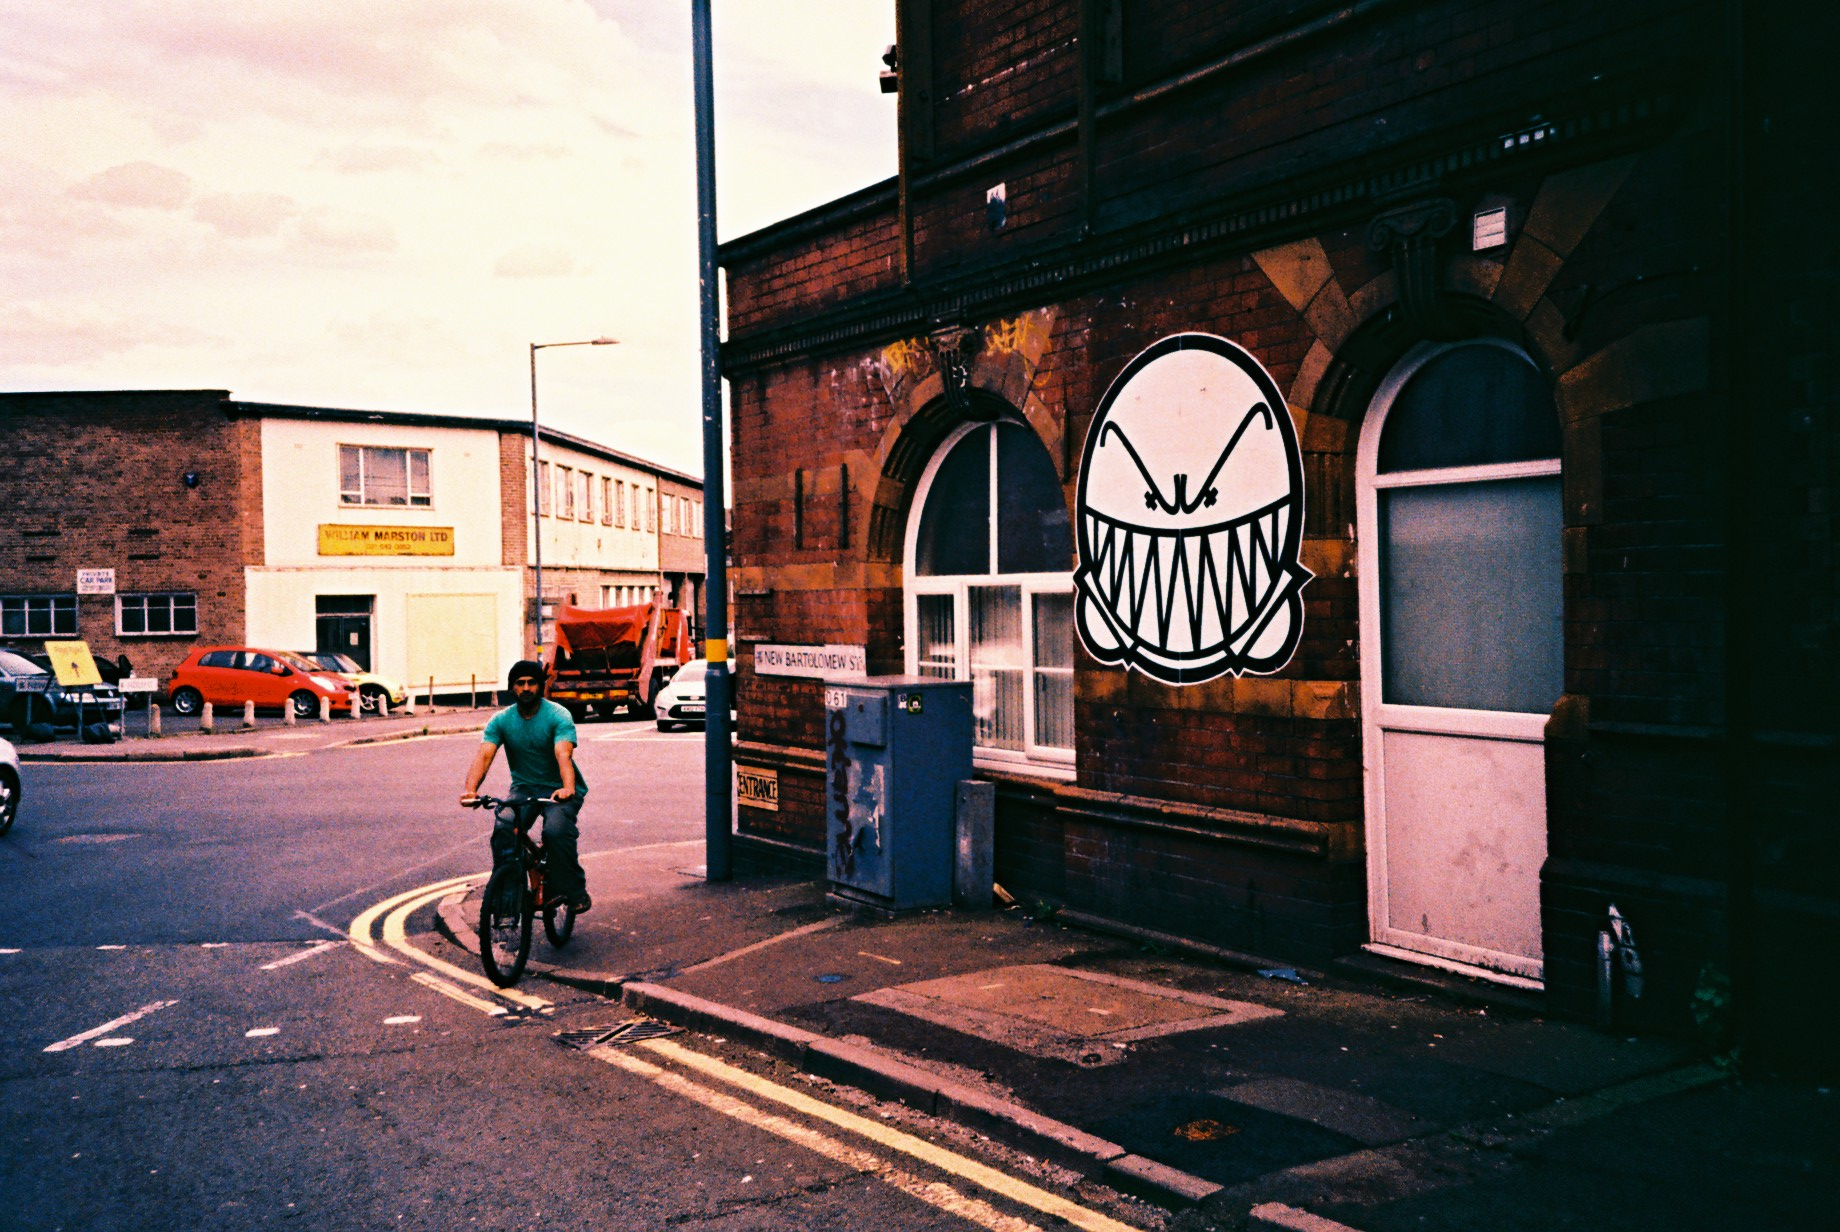 35mm Xpro Digbeth Street Graffiti